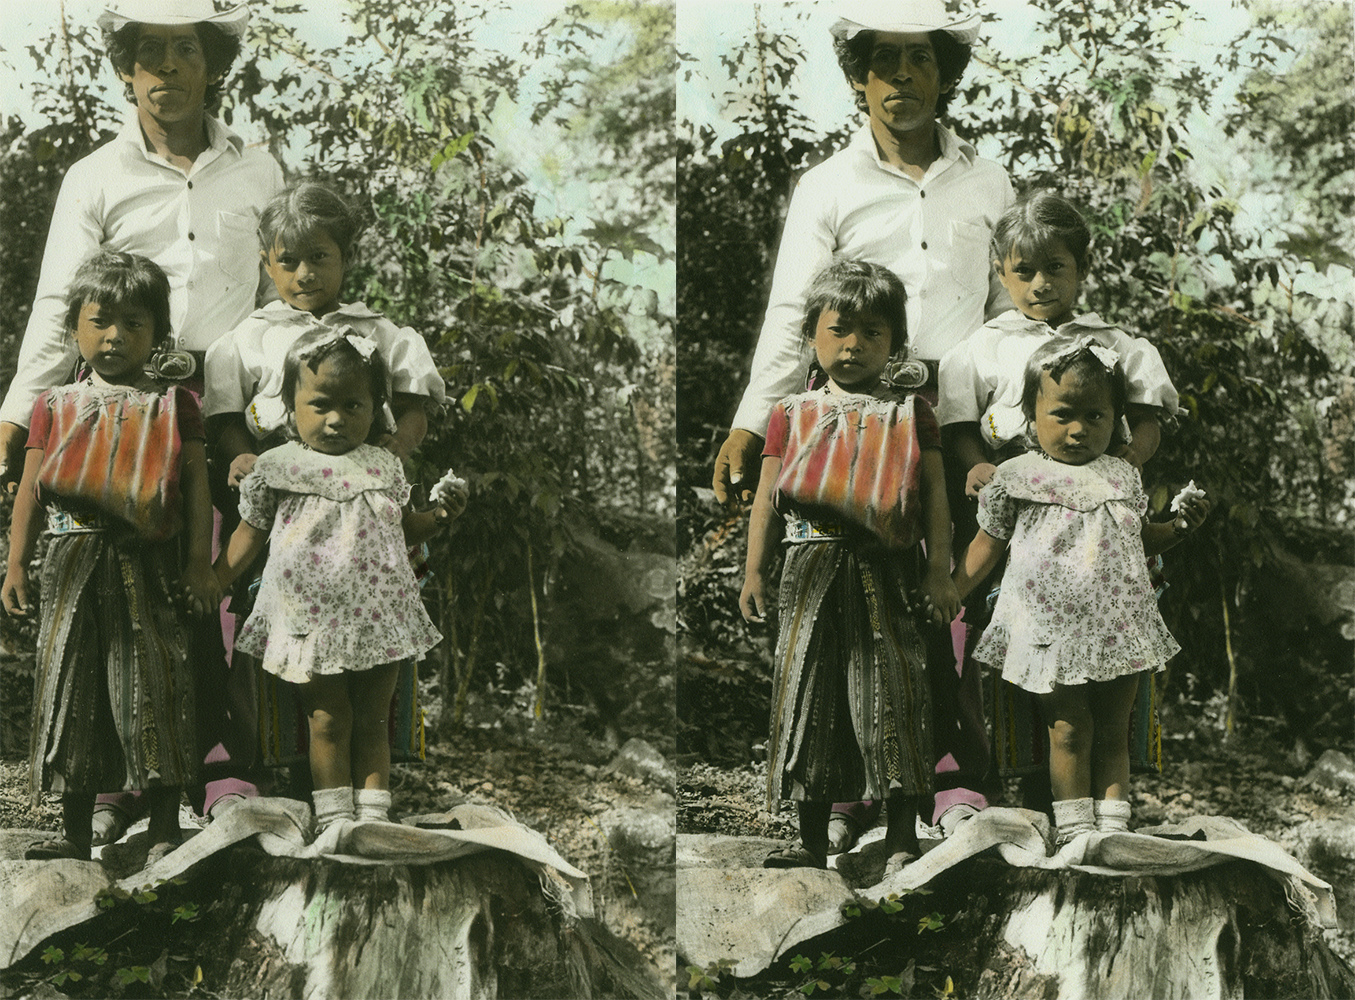 antonio and daughters_3D.jpg